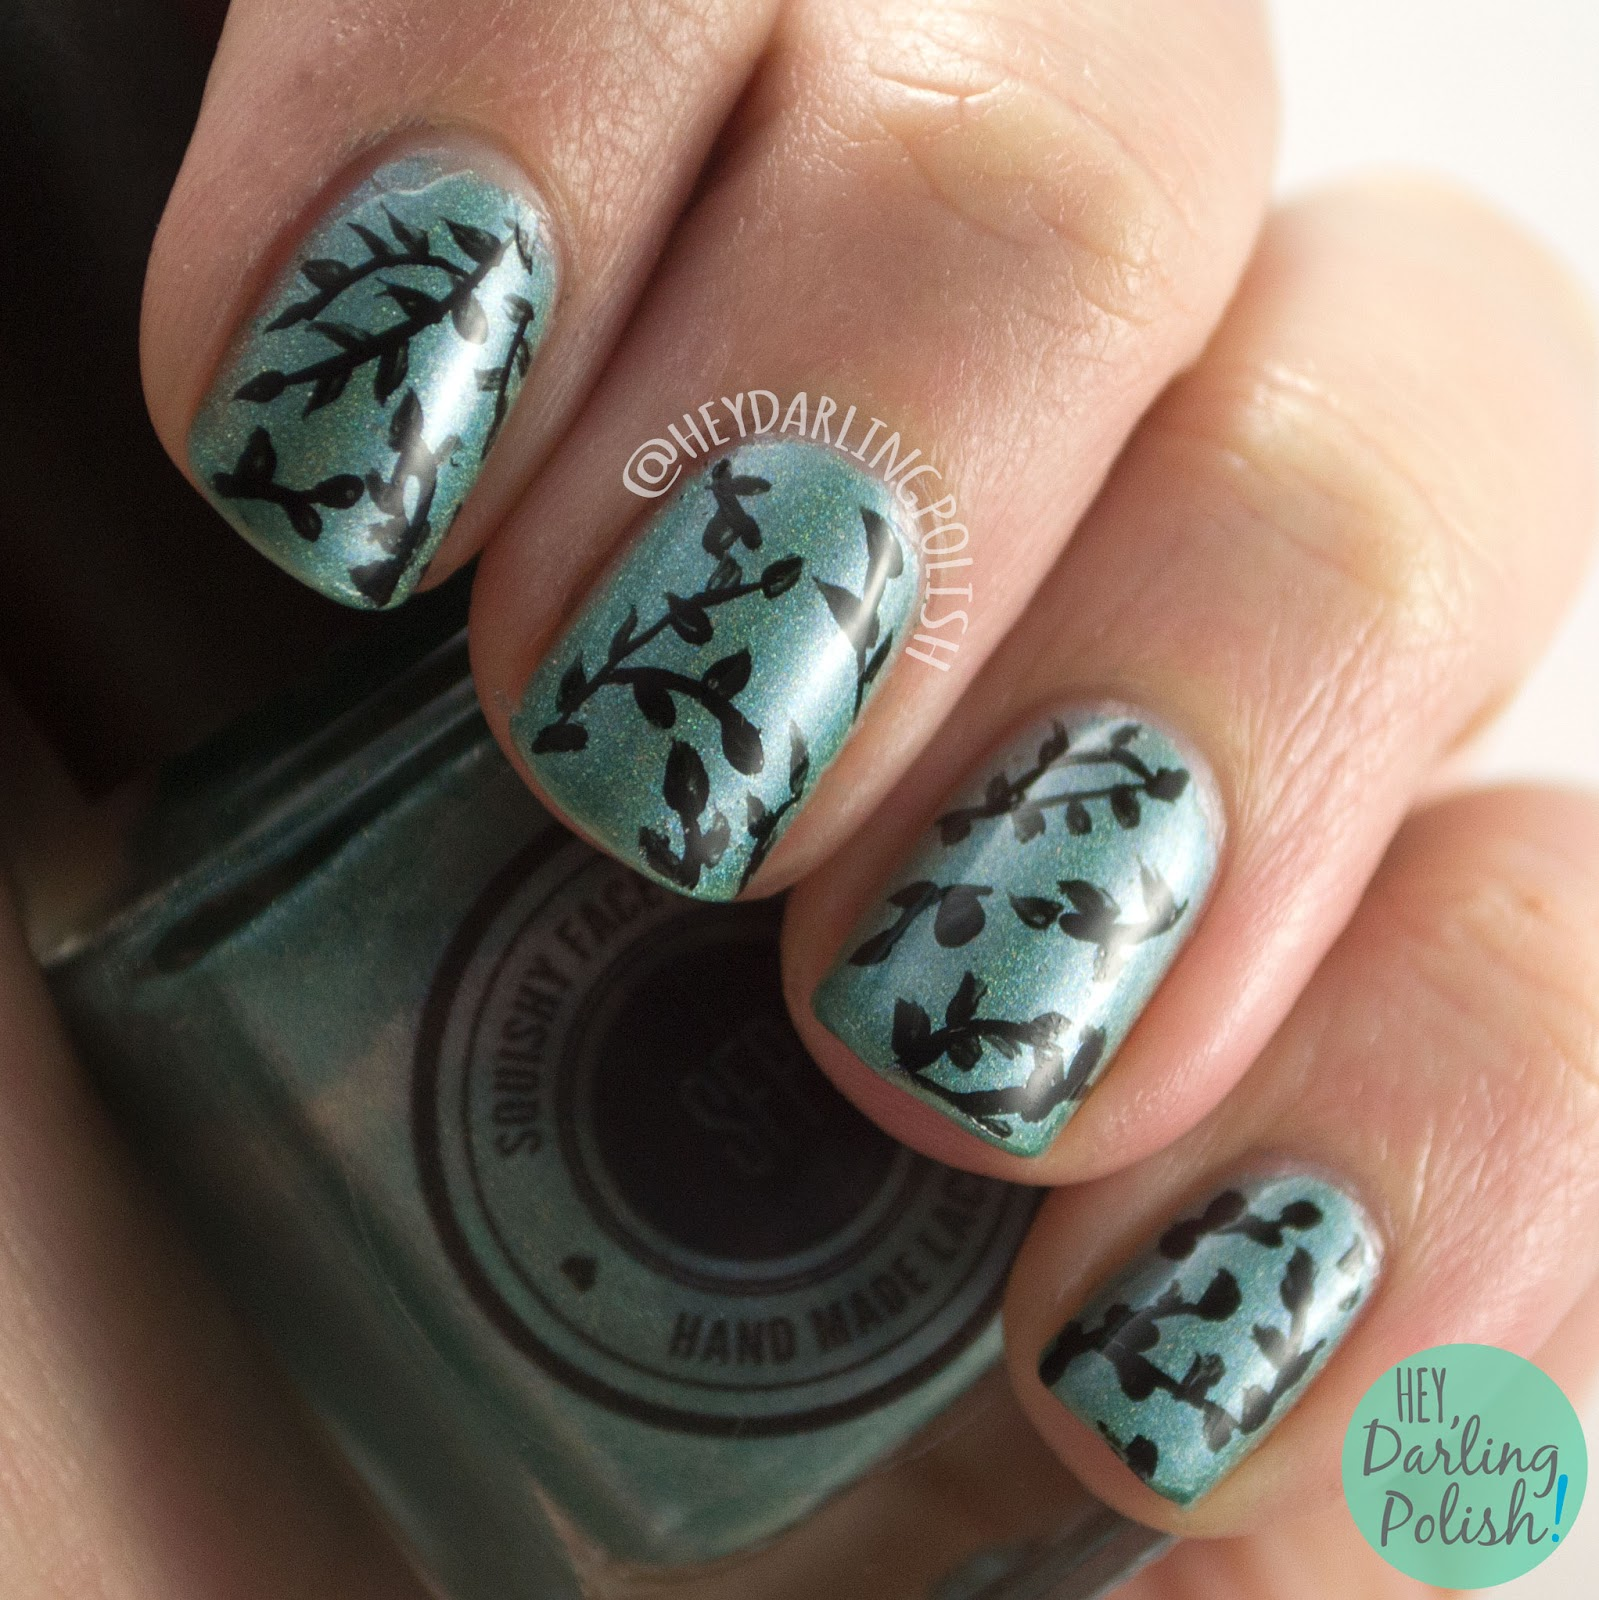 nails, nail art, nail polish, holo, teal, leaves, hey darling polish, nature nail art, 2015 cnt 31 day challenge